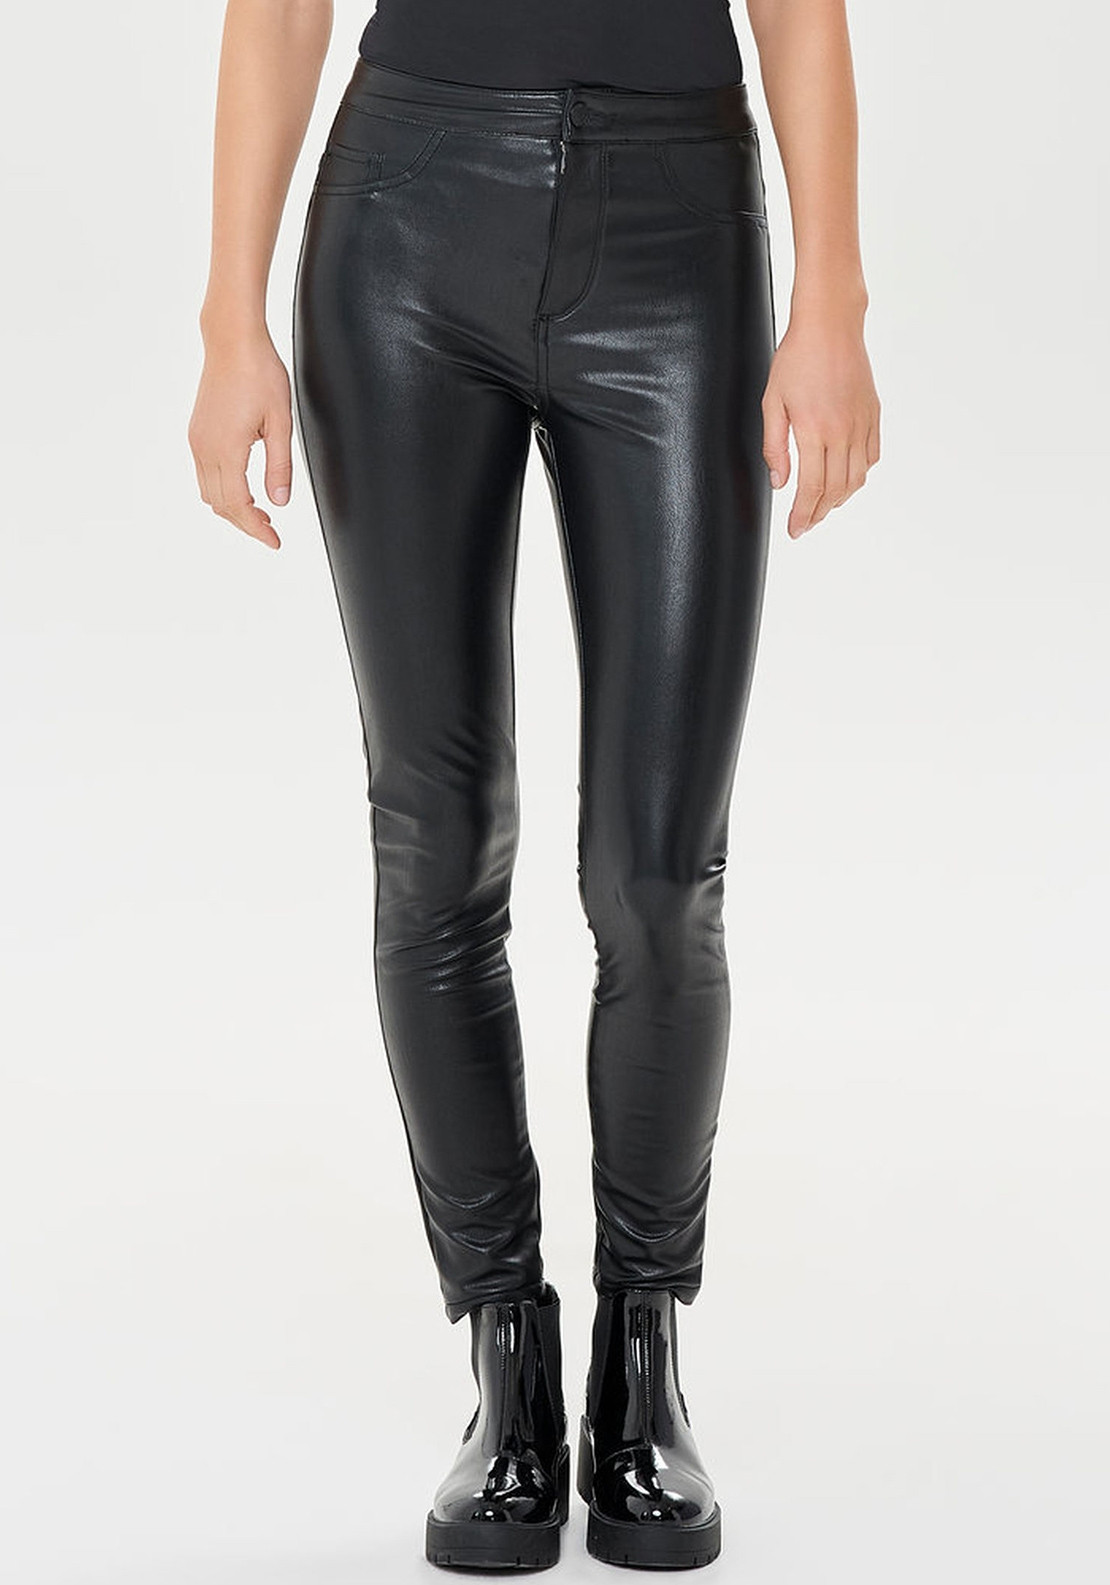 35f534ff314a90 Only Rush High Waist Leather Look Leggings, Black. Be the first to review  this product. Only Rush High Waist Leather Look Leggings ...